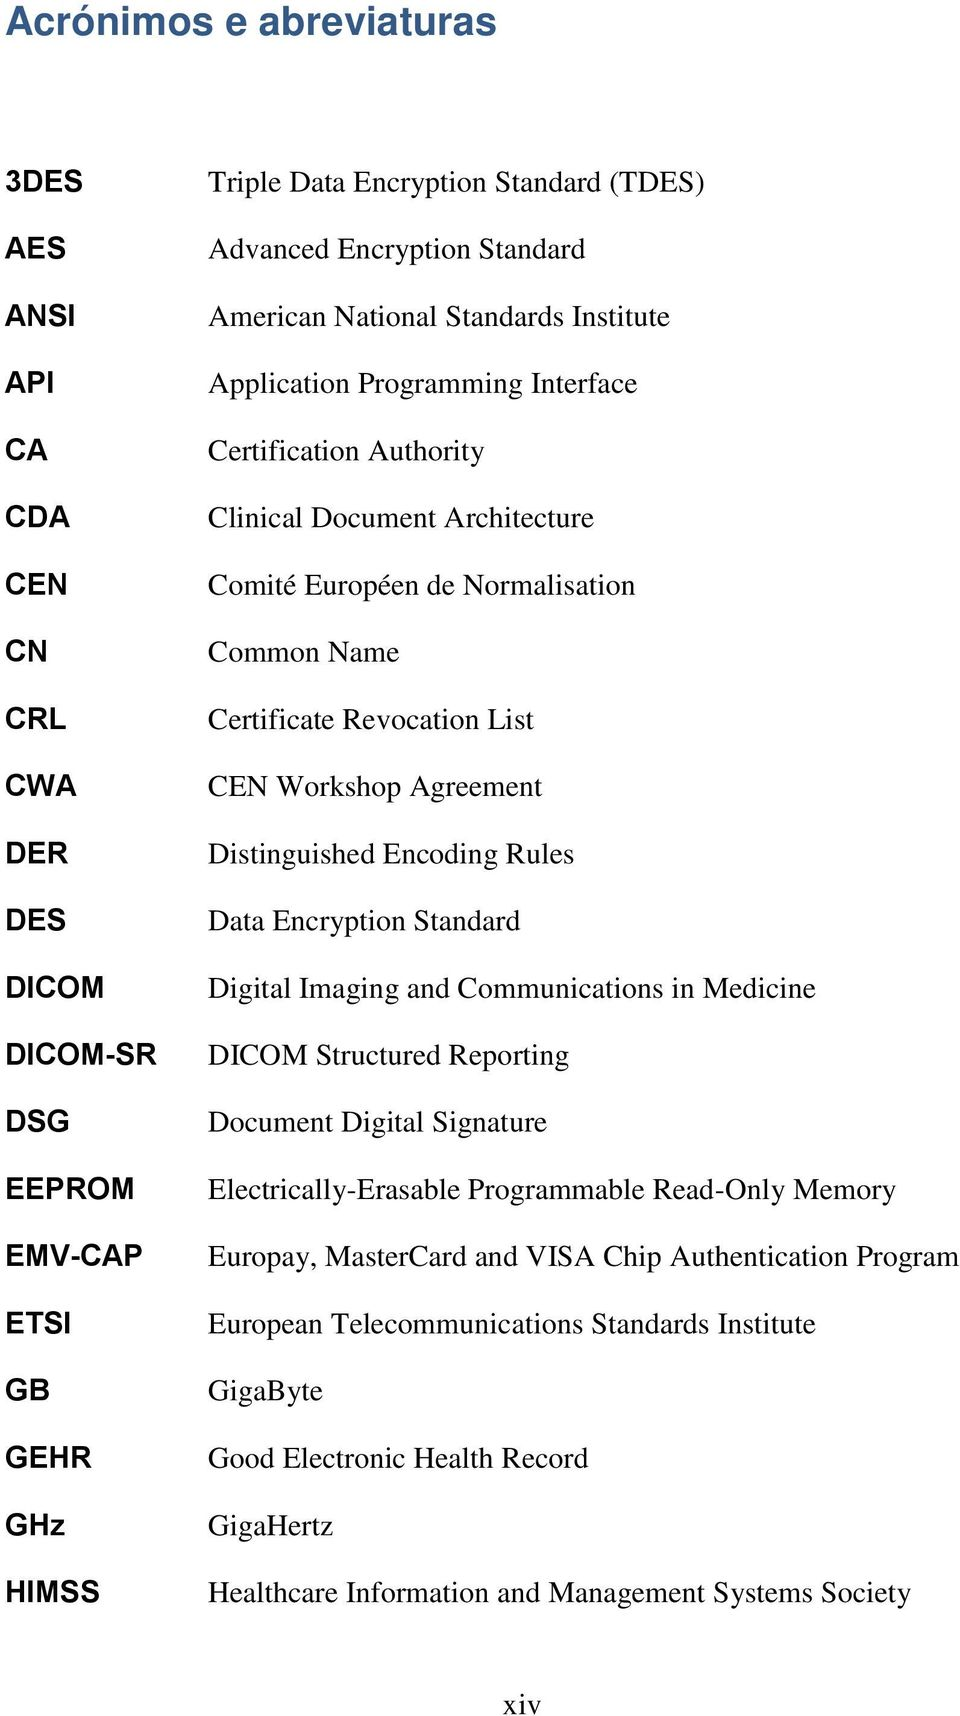 CEN Workshop Agreement Distinguished Encoding Rules Data Encryption Standard Digital Imaging and Communications in Medicine DICOM Structured Reporting Document Digital Signature Electrically-Erasable